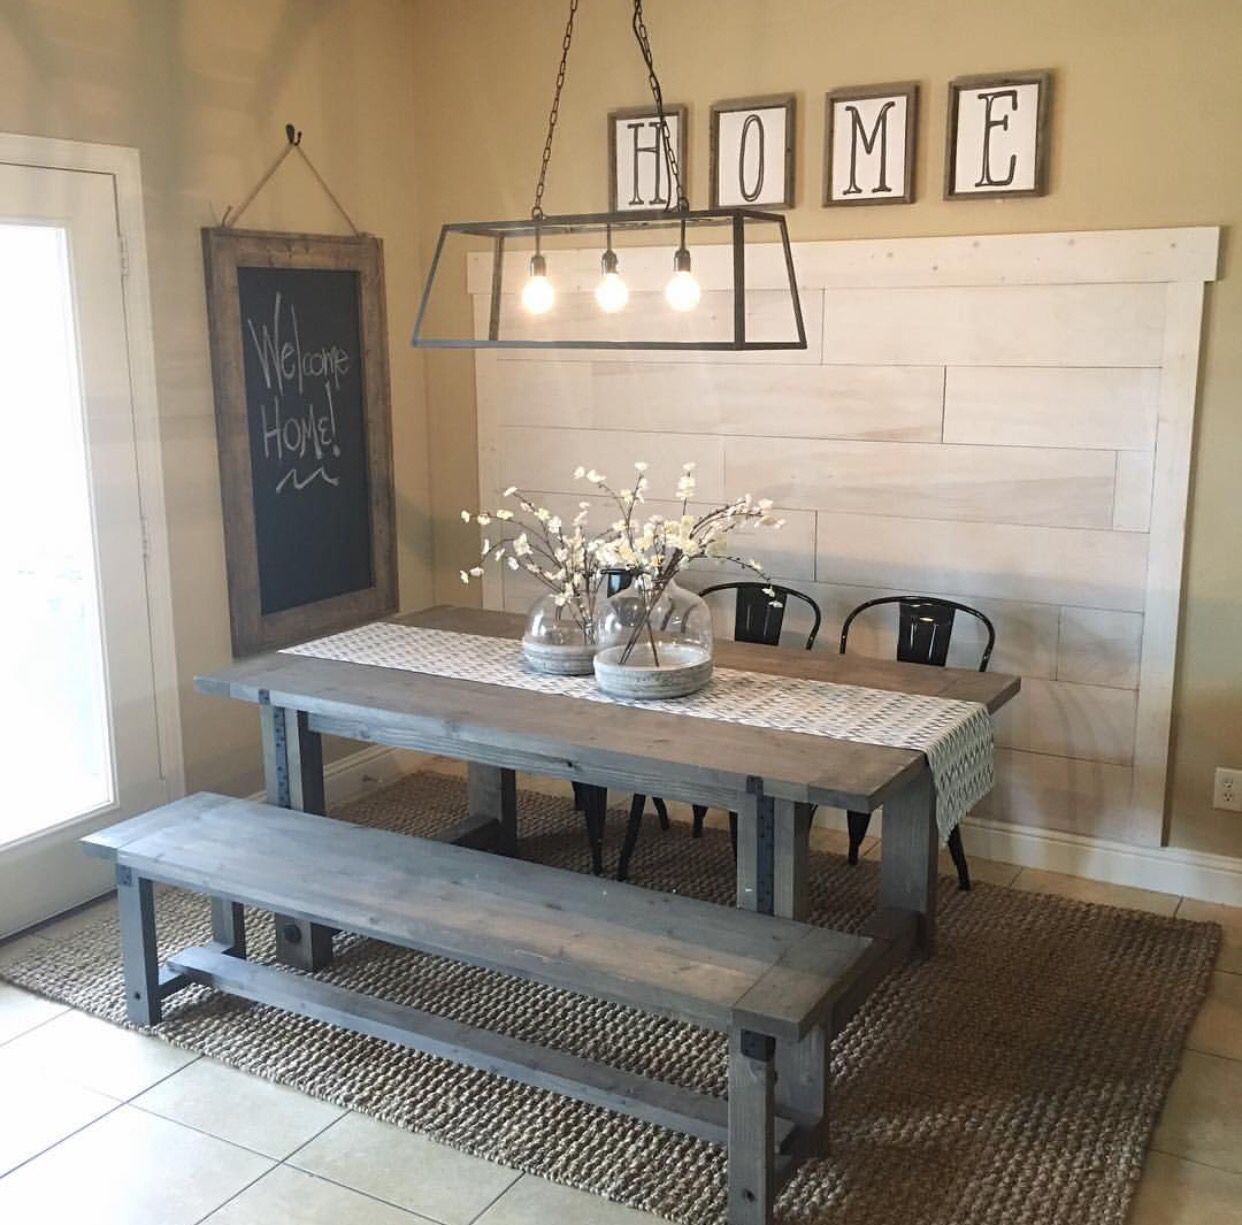 Farmhouse shabby chic dining table. Rustic wood picnic